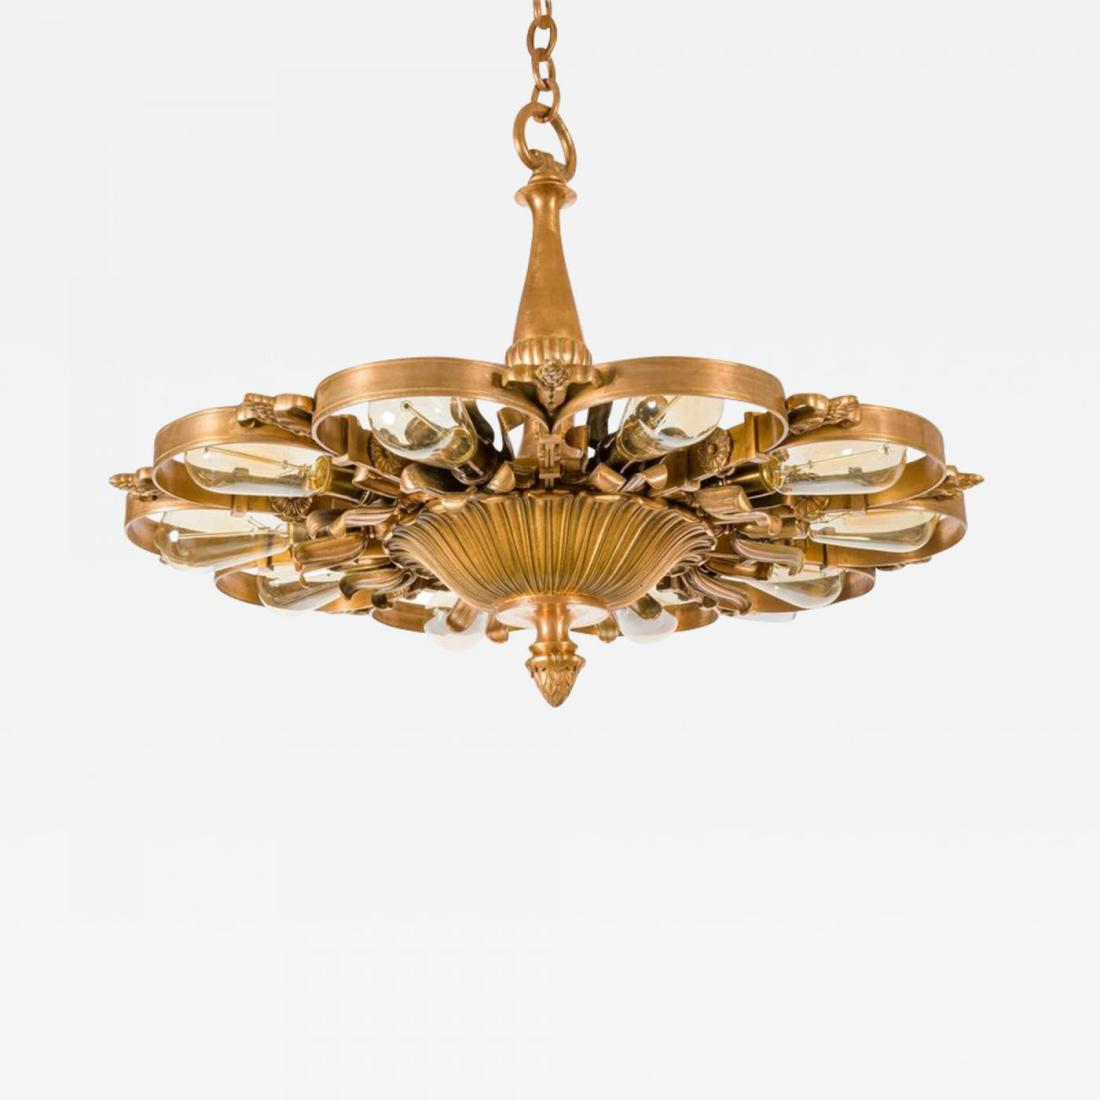 Neoclassical chandelier. Bronze. 1920's.